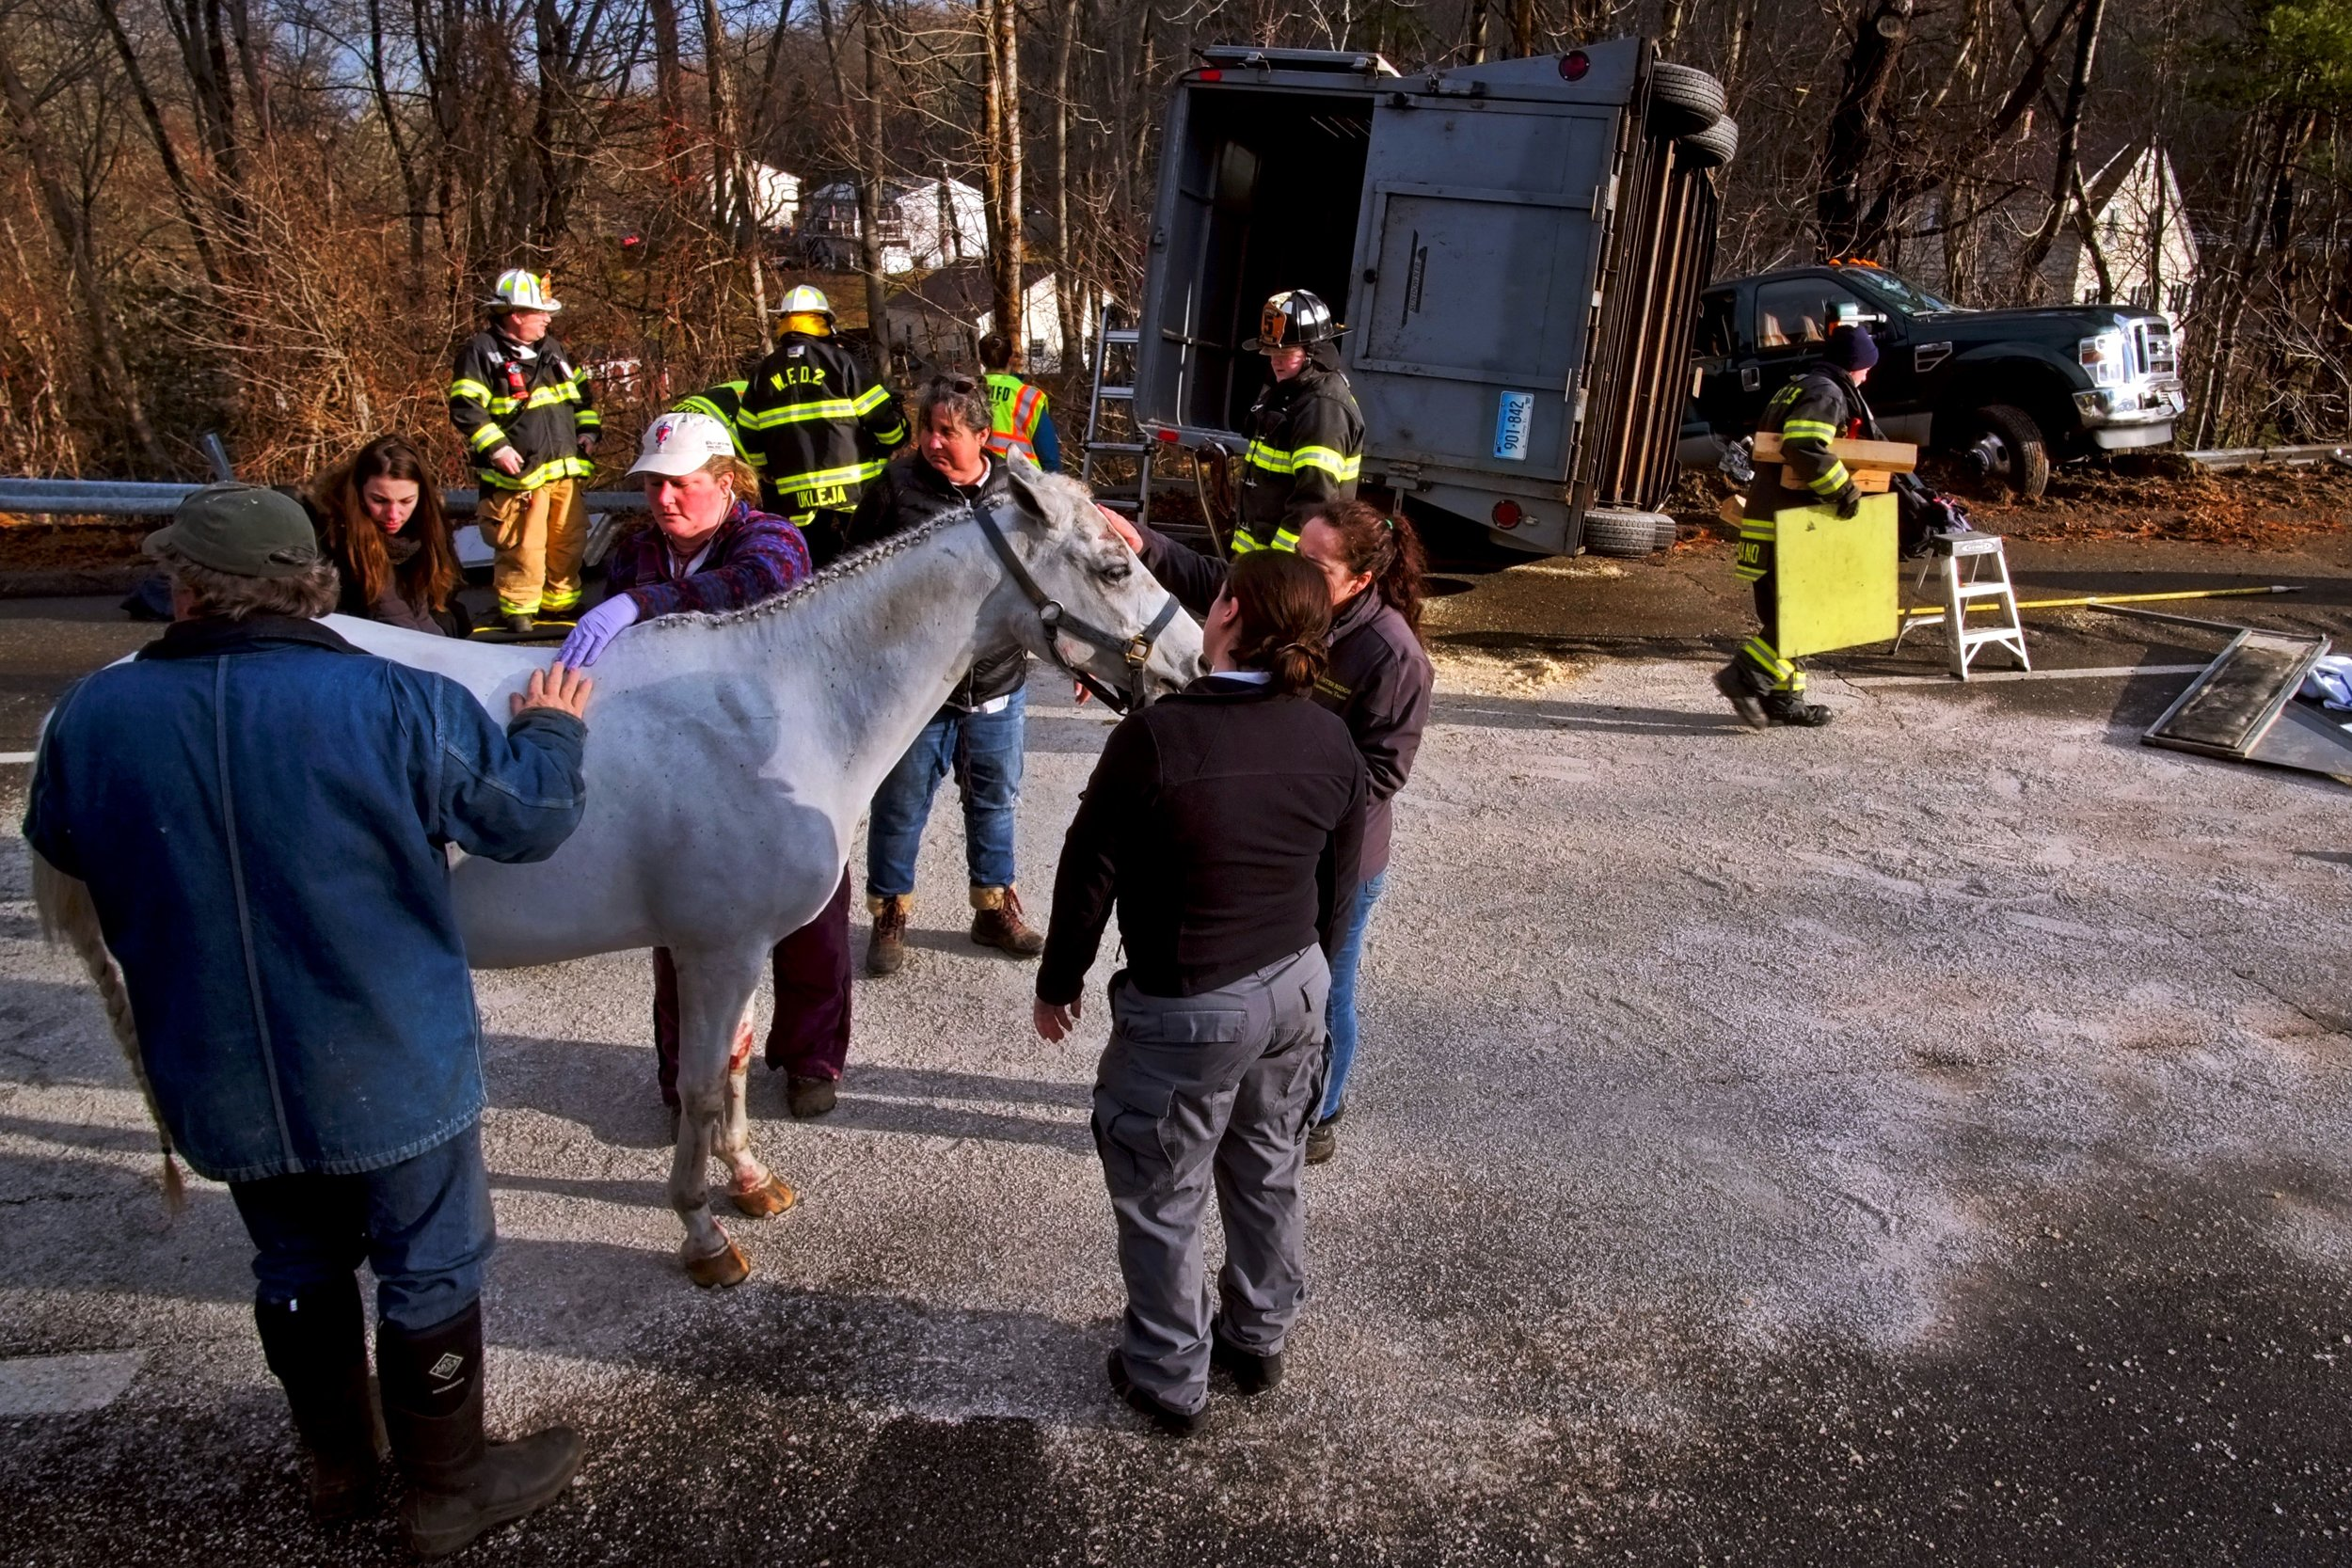 20190106_Waterford_Cohanzie_Quaker_Hill_Horse_Trailer_Rescue_Rt32_395_x0308v2.jpg